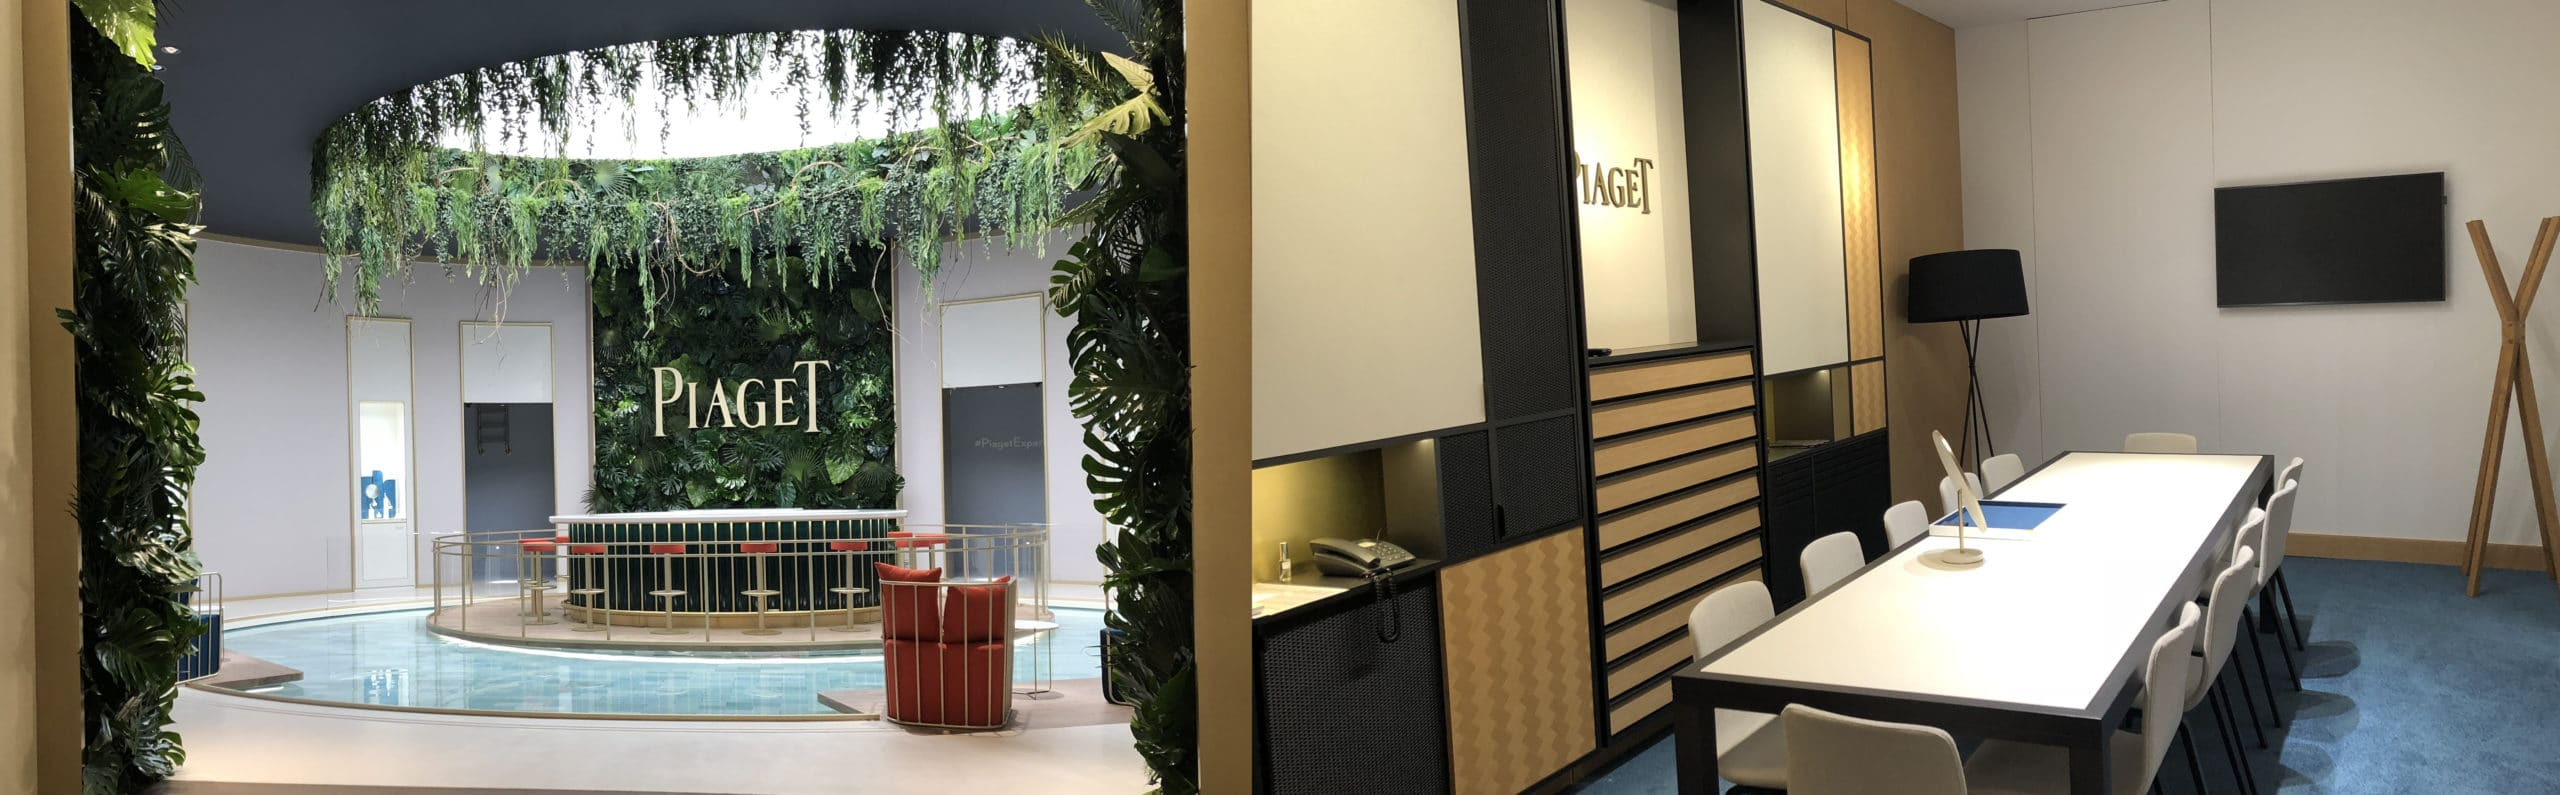 stand-salon-exposition-piaget